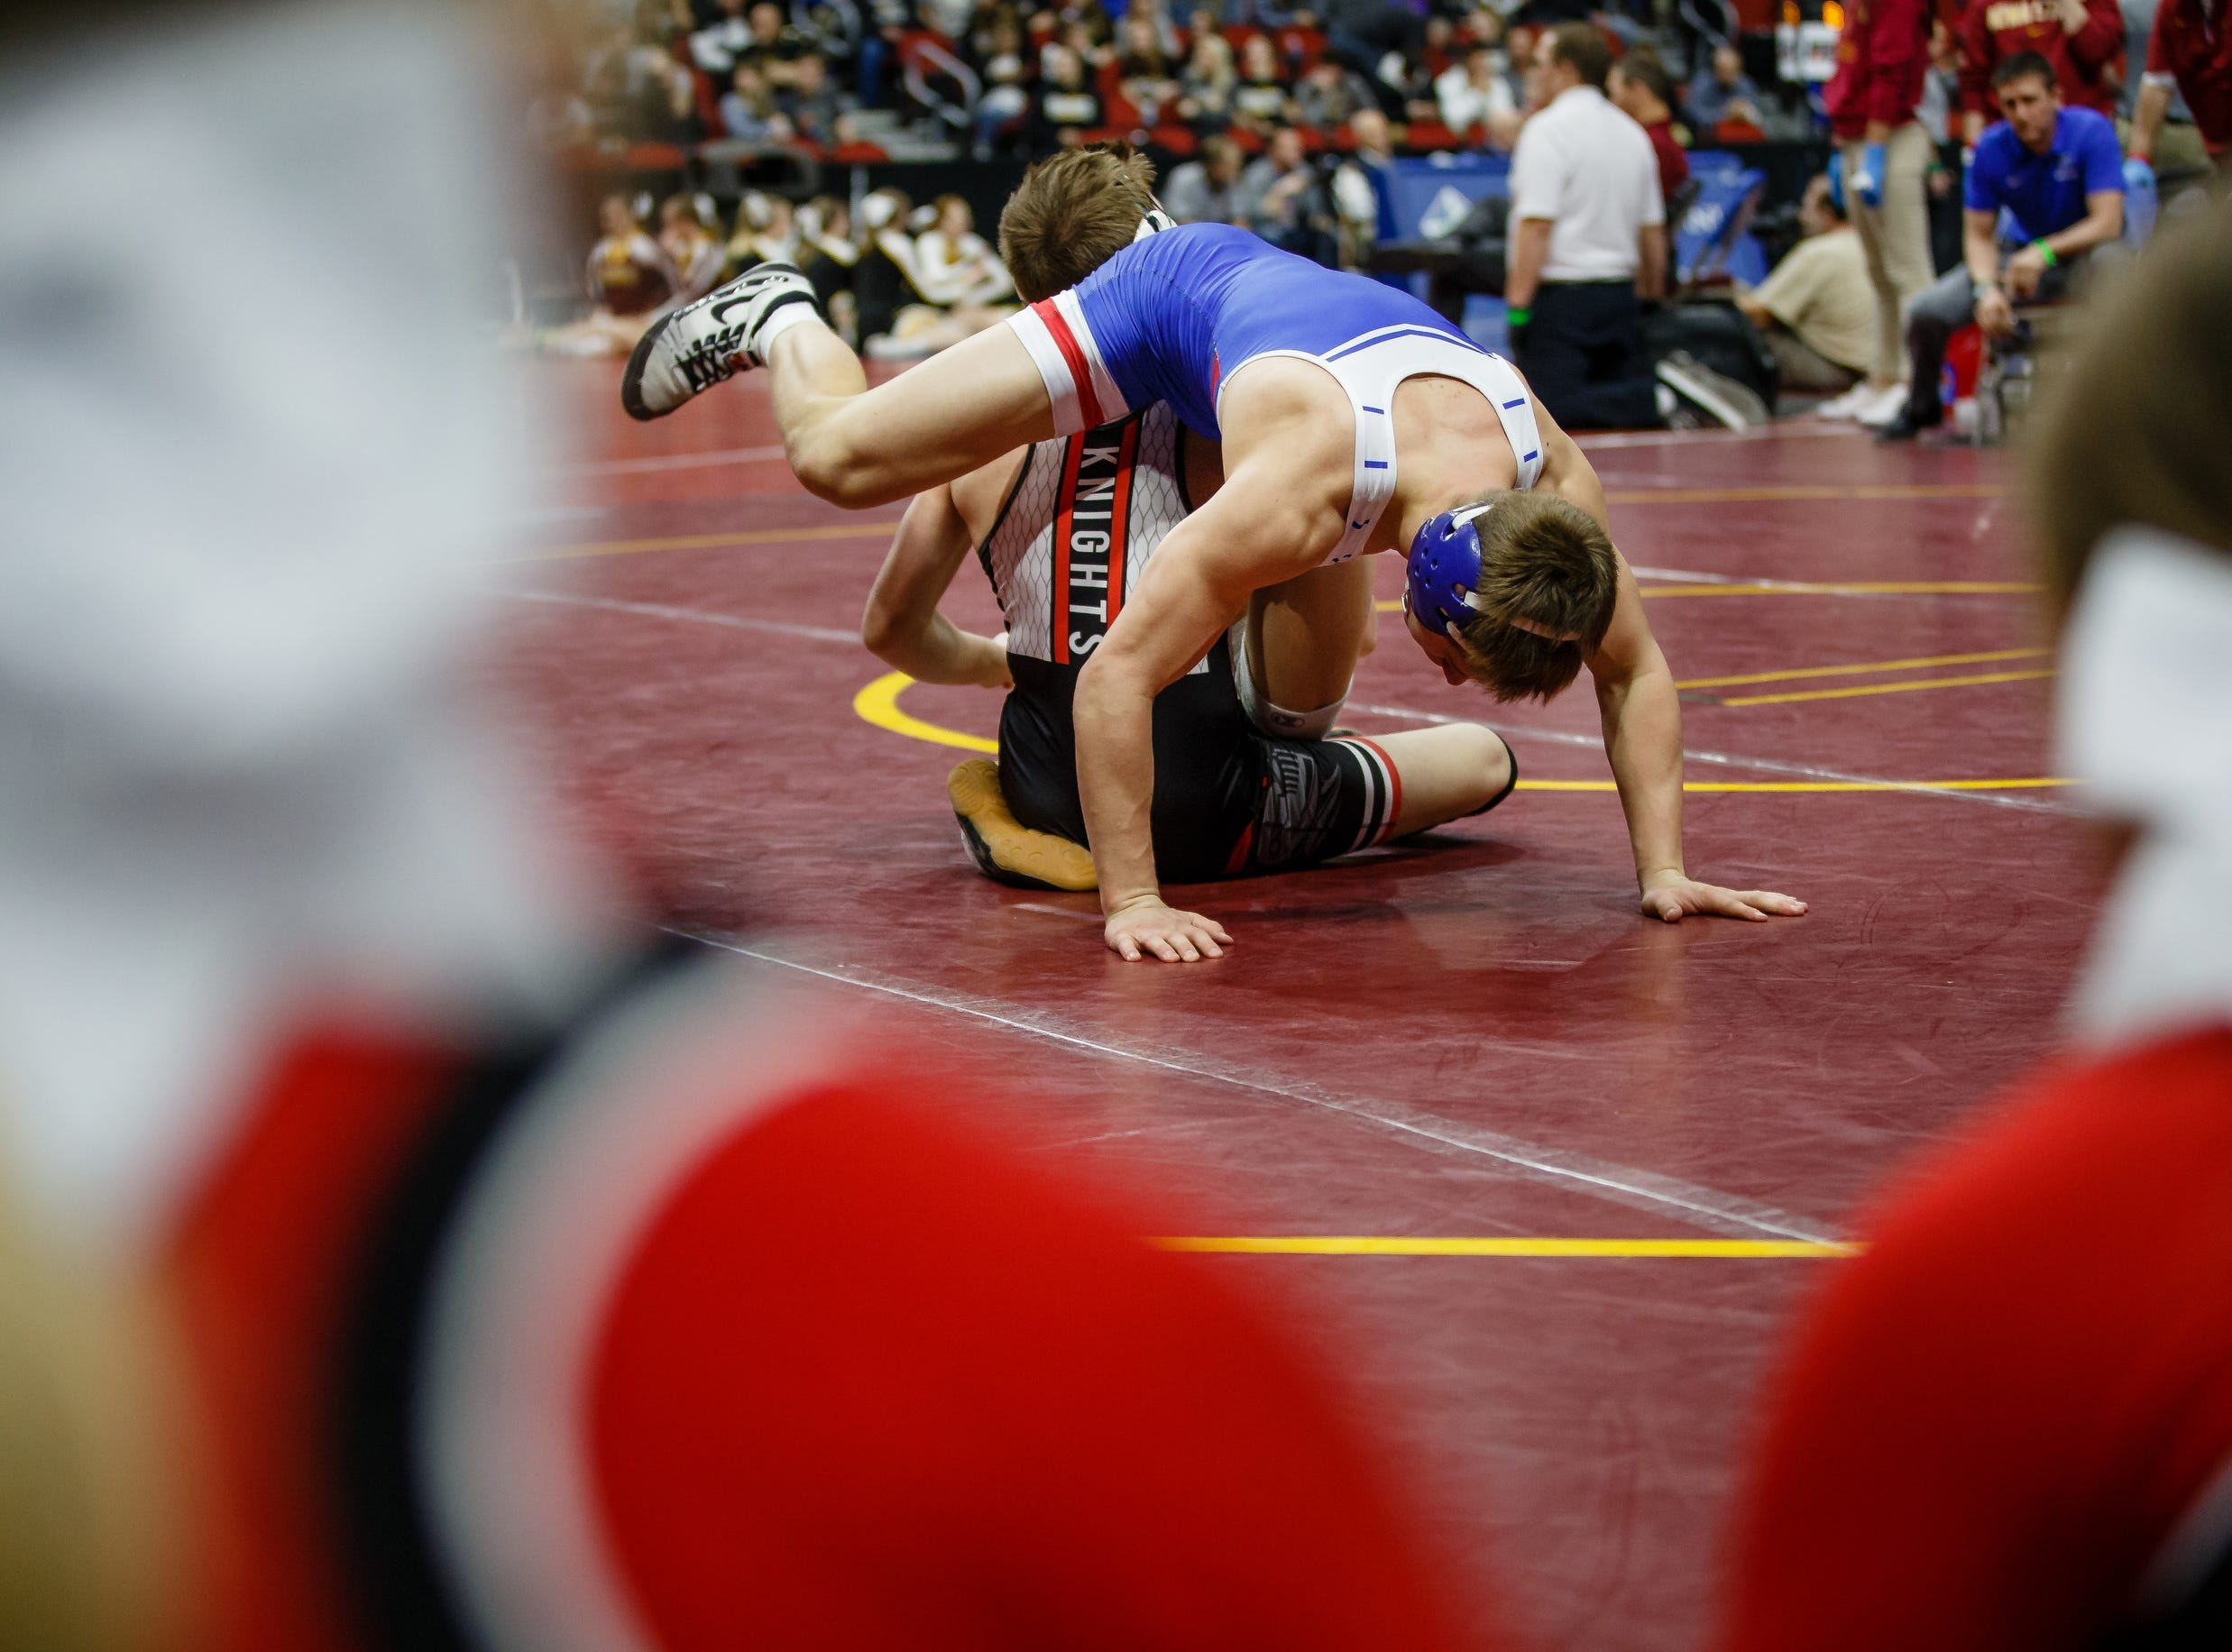 Kaleb Olejniczak of Perry wrestles Jack Thomsen of Union, Jr during their class 2A 138 pound state championship semi-final match on Friday, Feb. 15, 2019 in Des Moines. Thomsen moves onto the final.